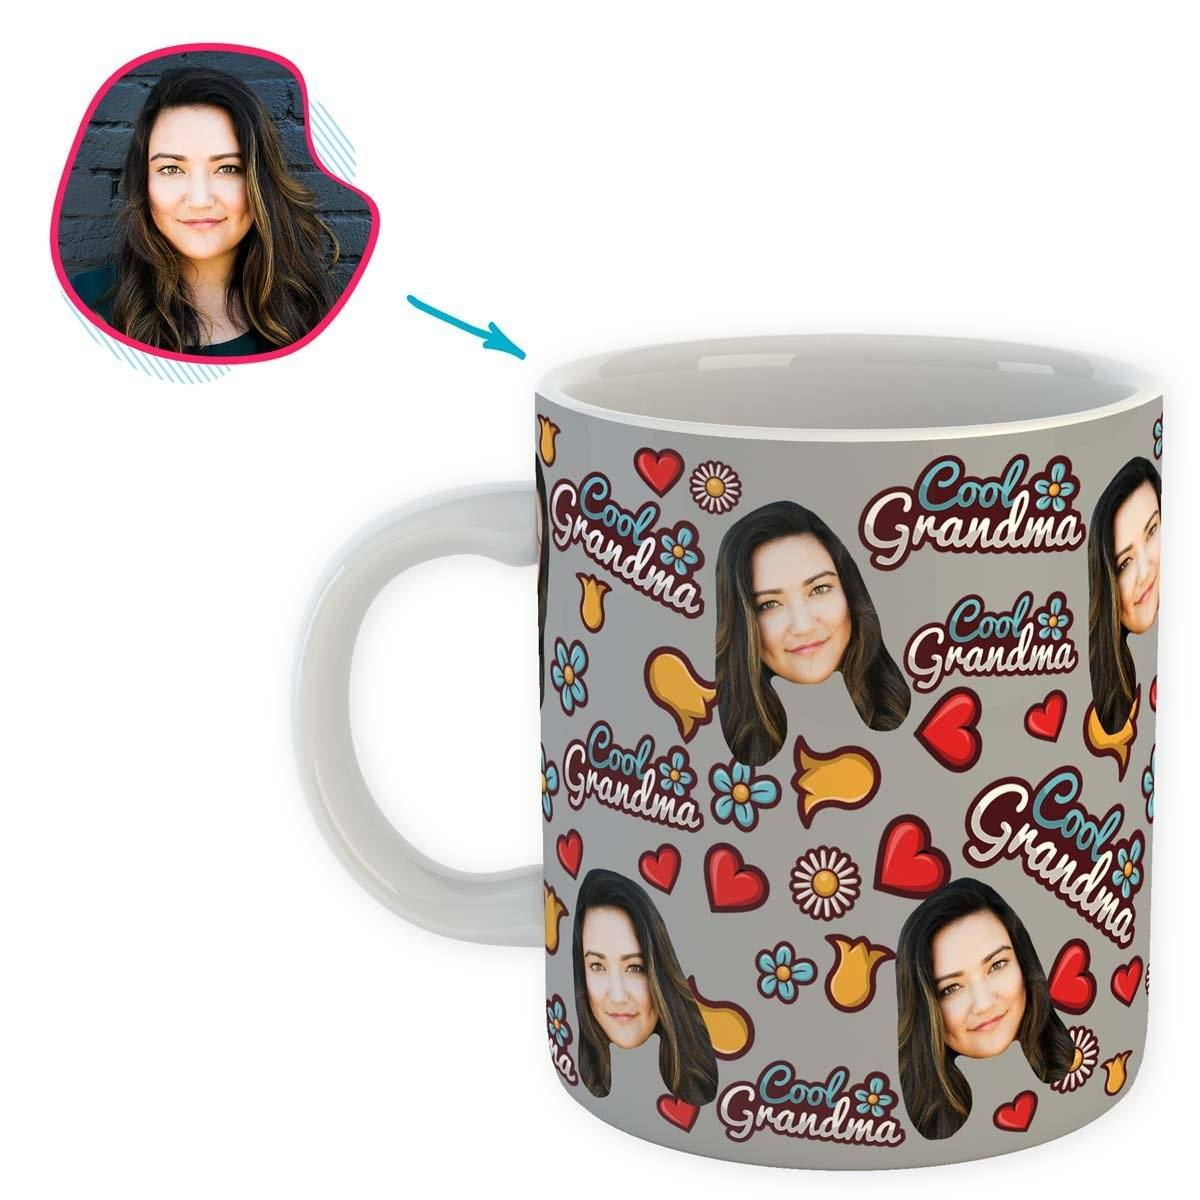 grey Cool Grandmother mug personalized with photo of face printed on it